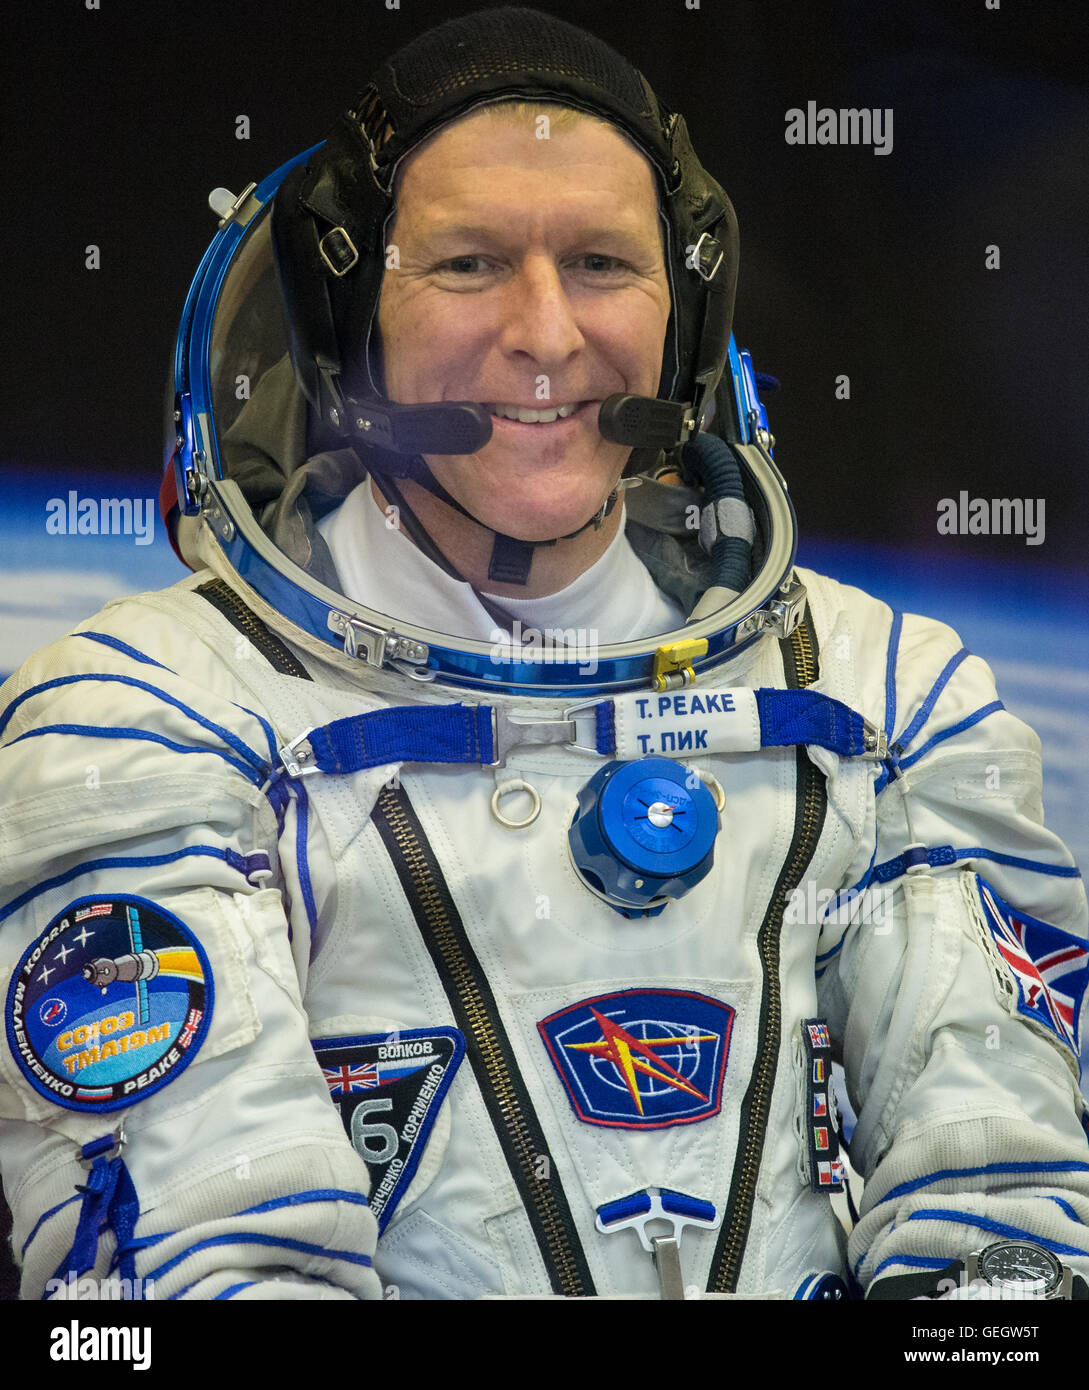 Expedition 46 Preflight  12150062 - Stock Image